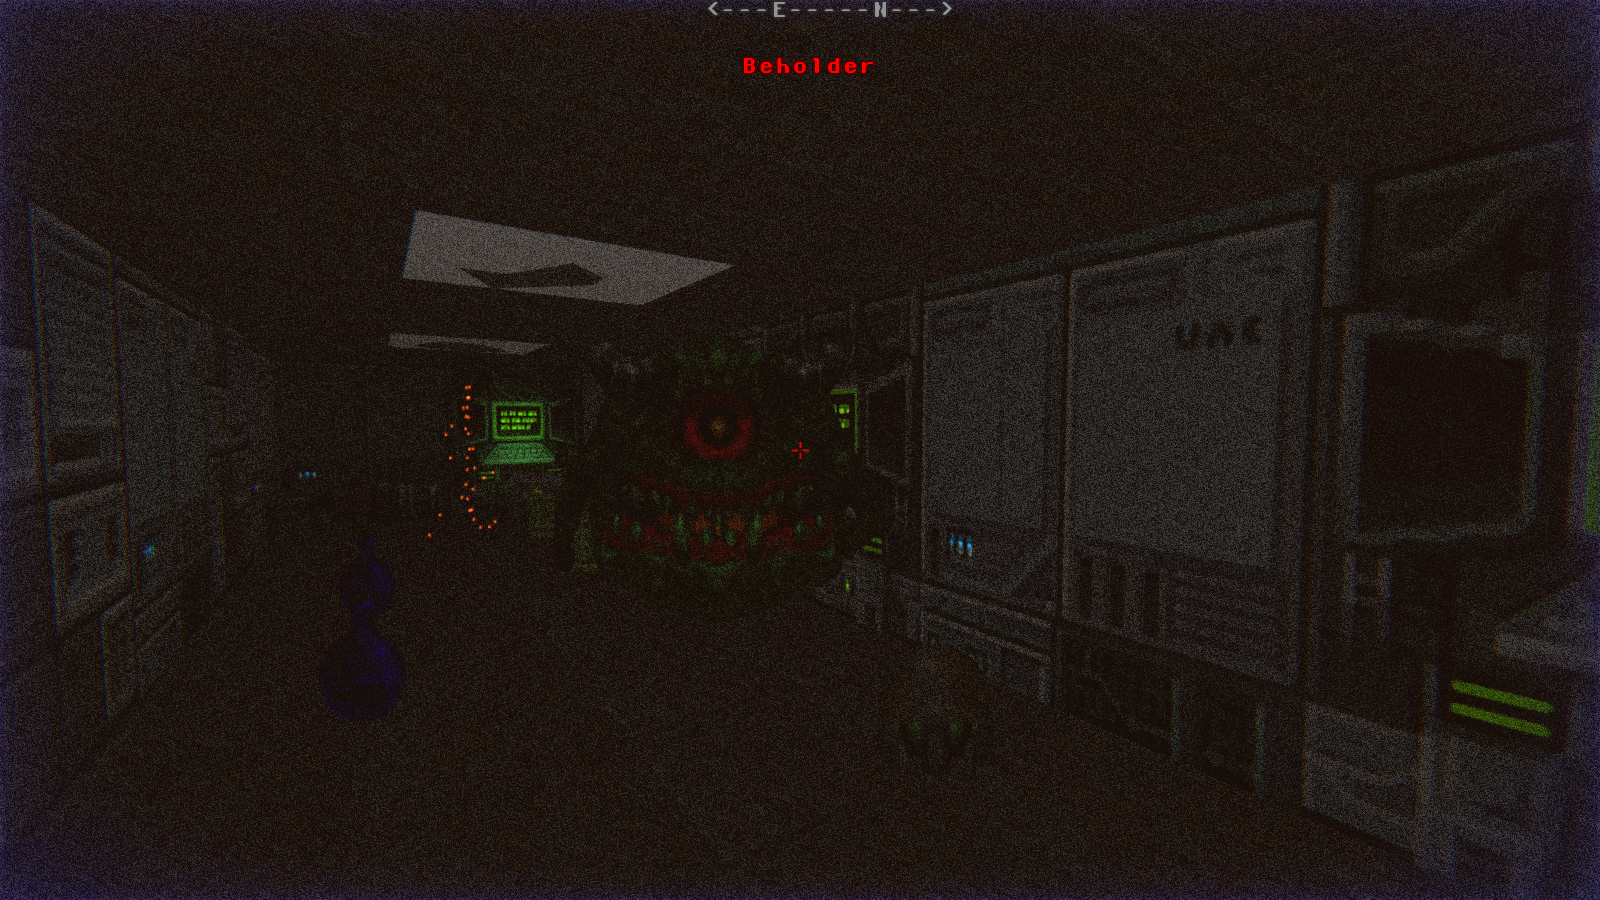 DRRP Doom RPG Remake Project SEC2 Sector 2 Beholder Screenshot